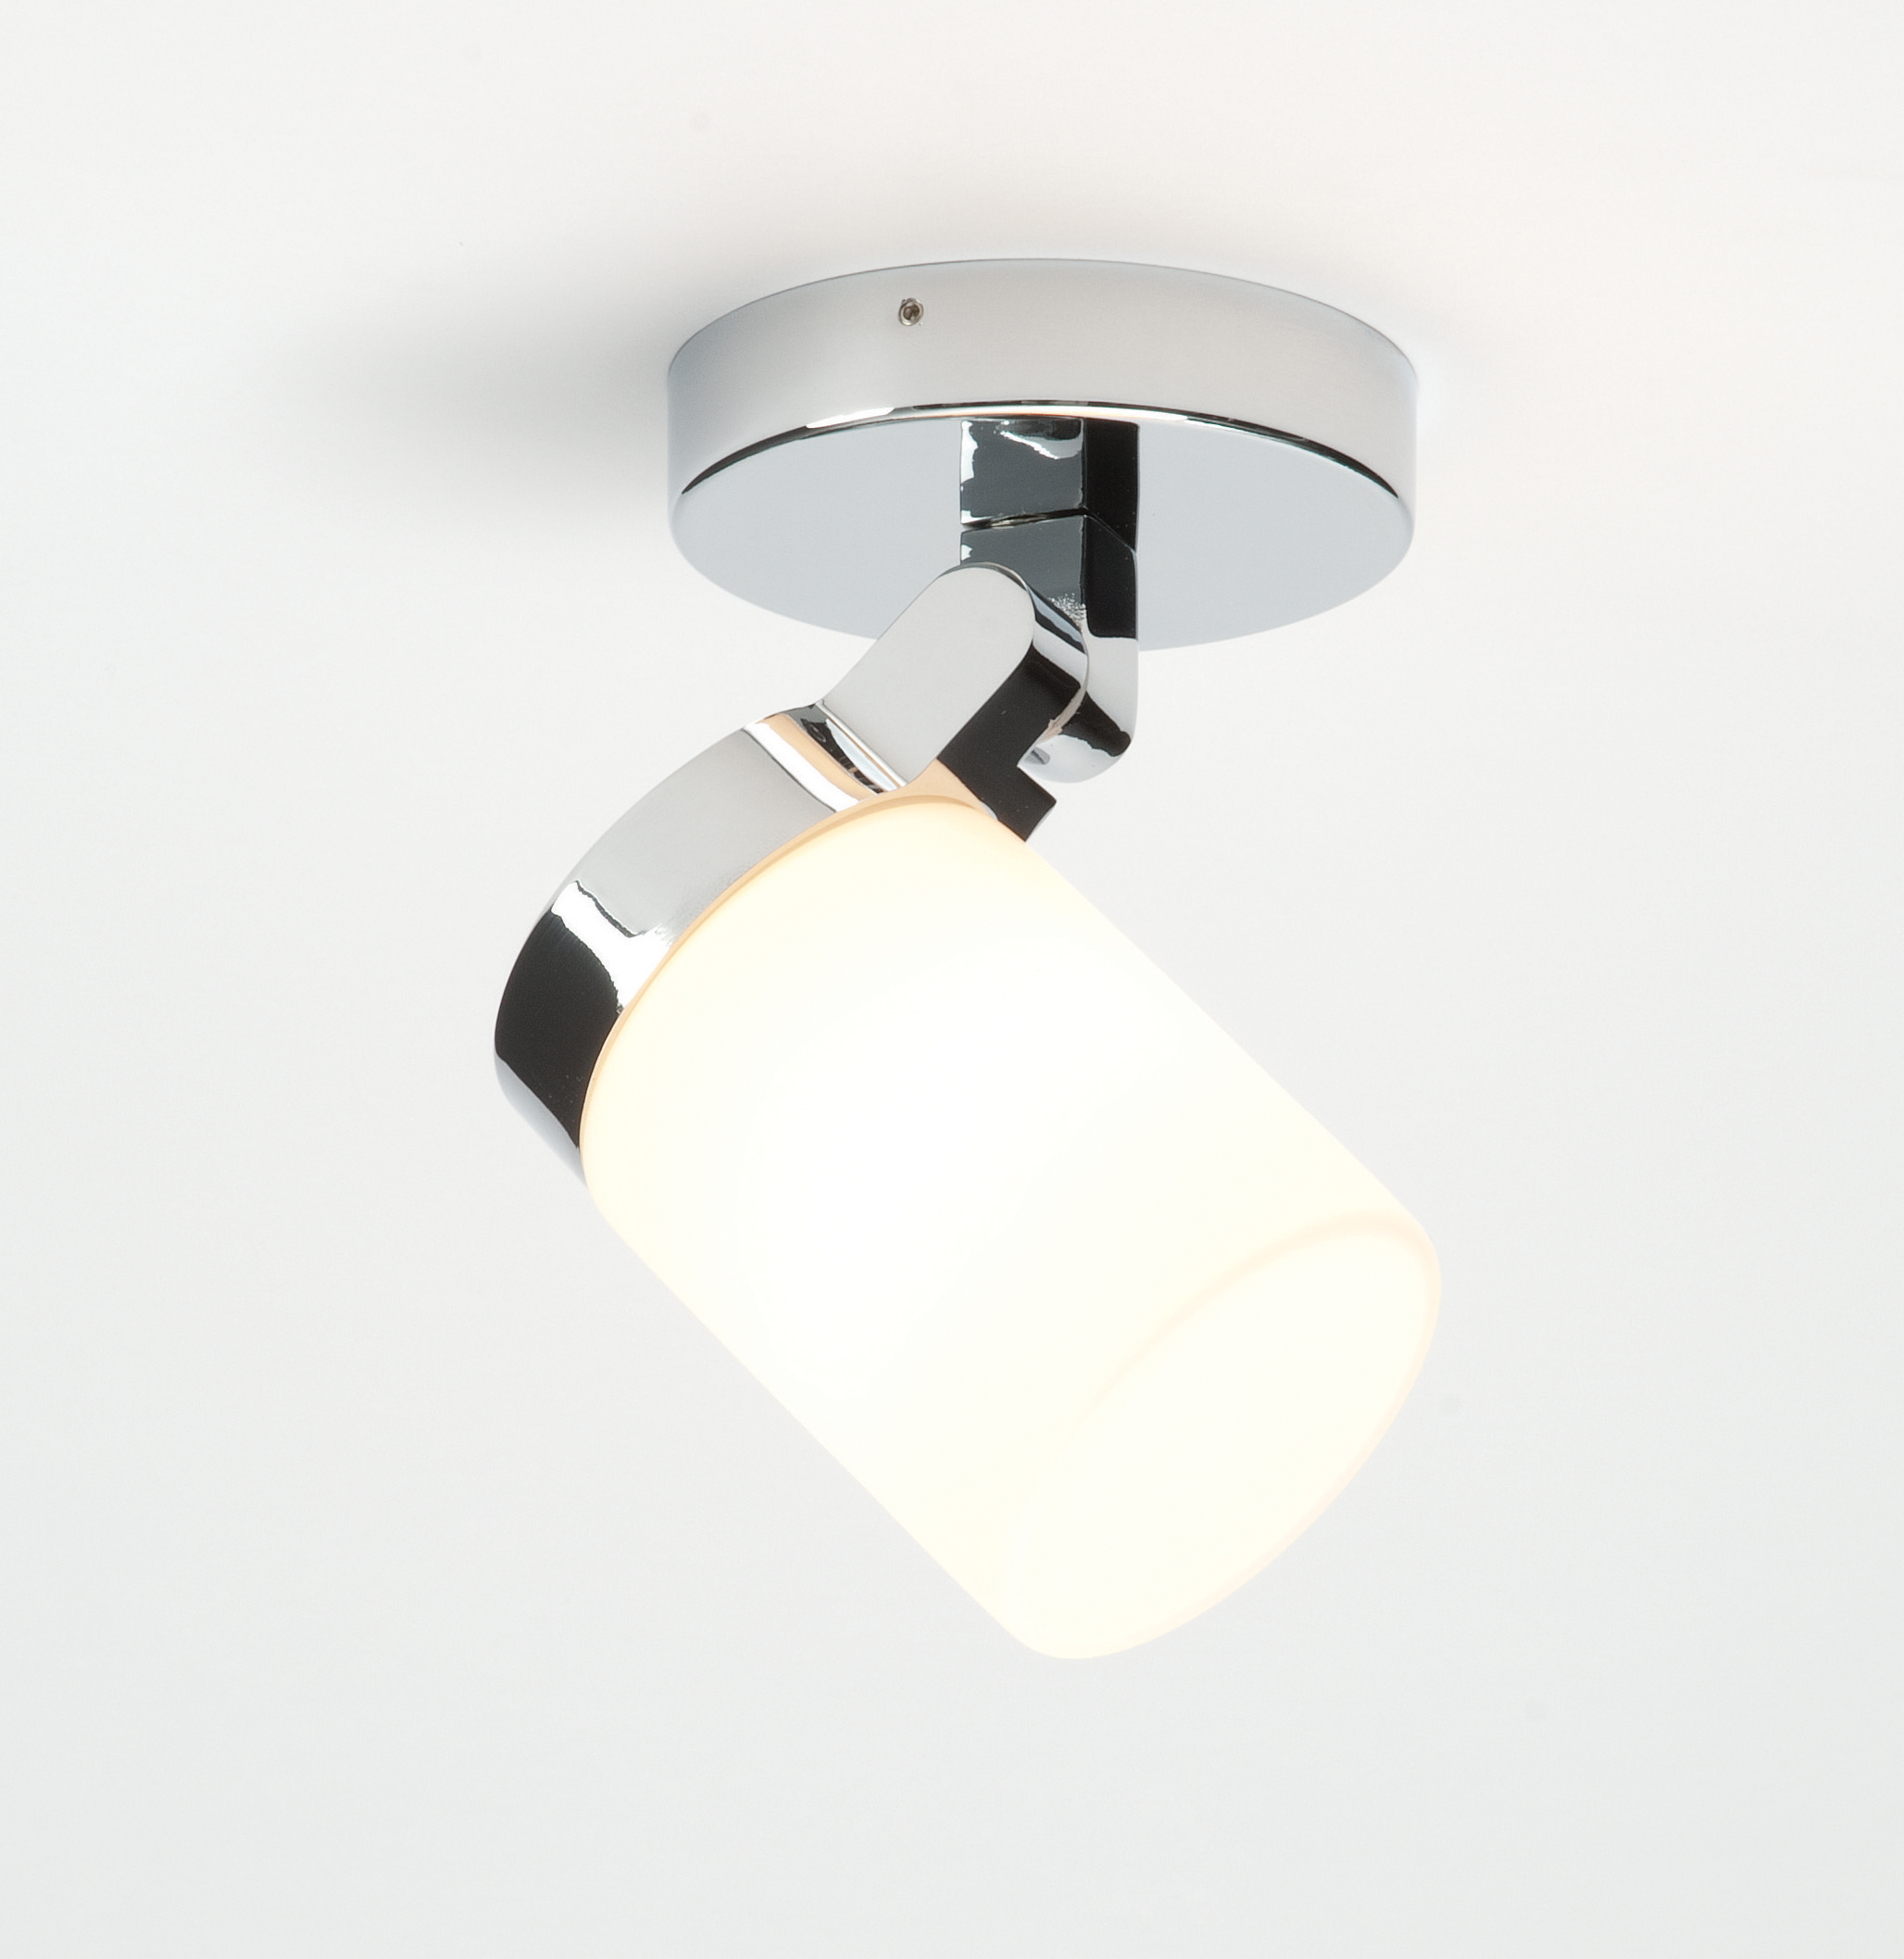 Details about Saxby Cosmo Single 39616 bathroom dimmable Spotlight 18W